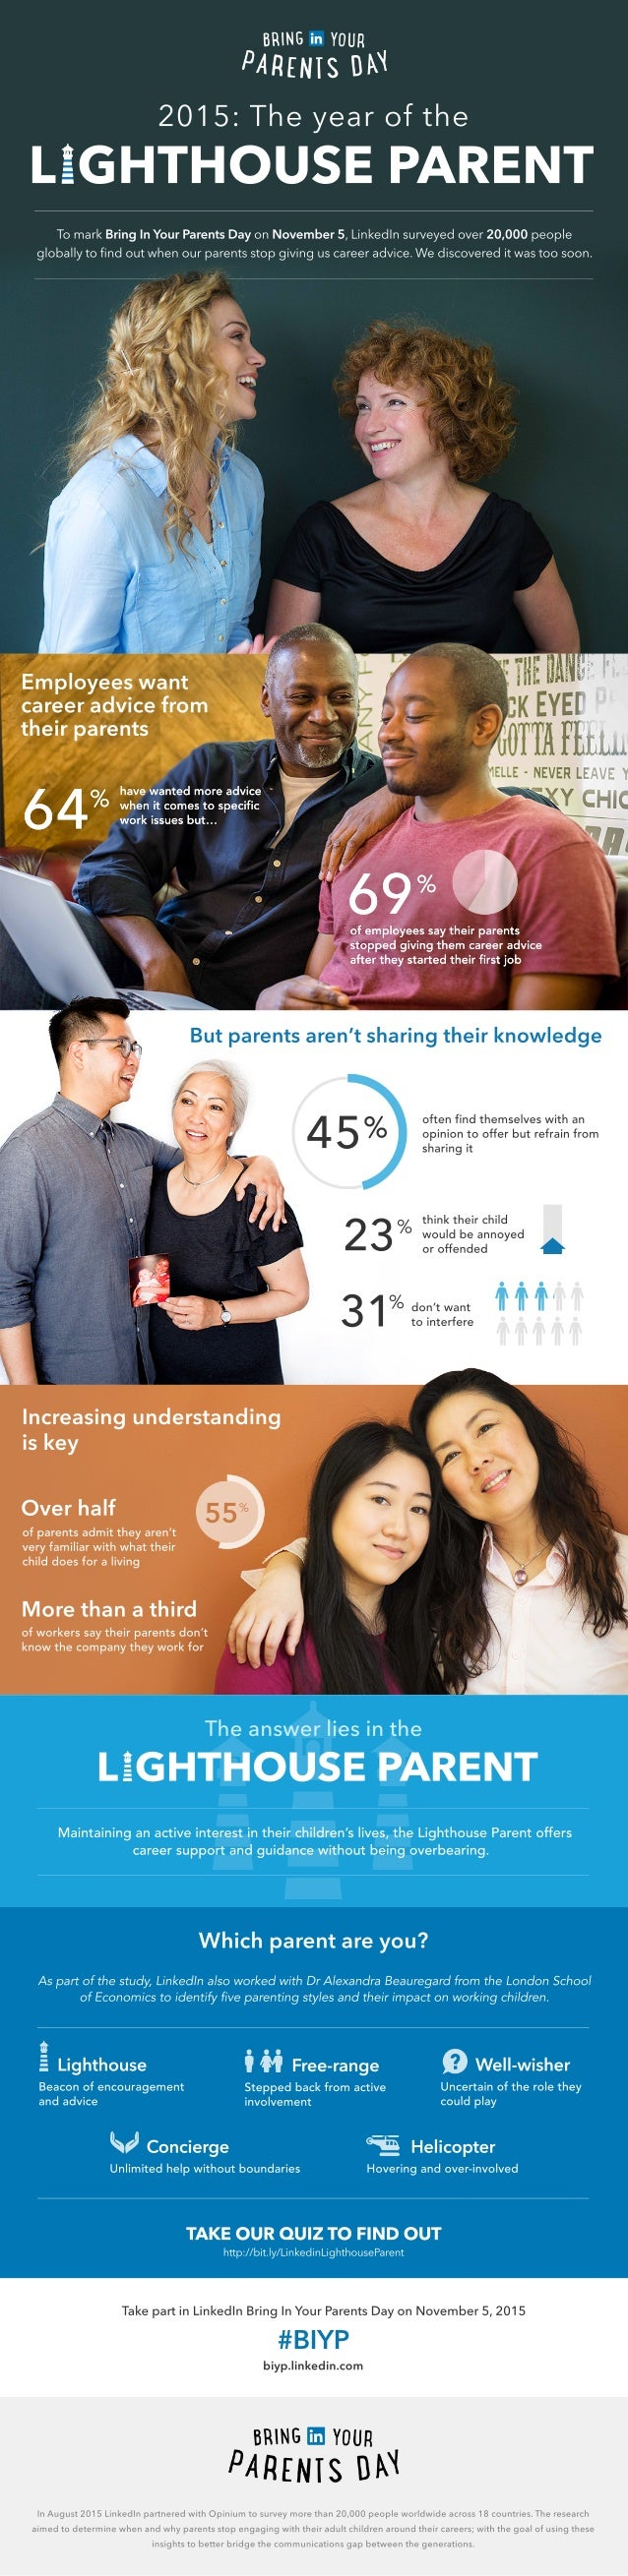 LinkedIn Research Infographic: Parents Stop Giving Career Advice Too Early